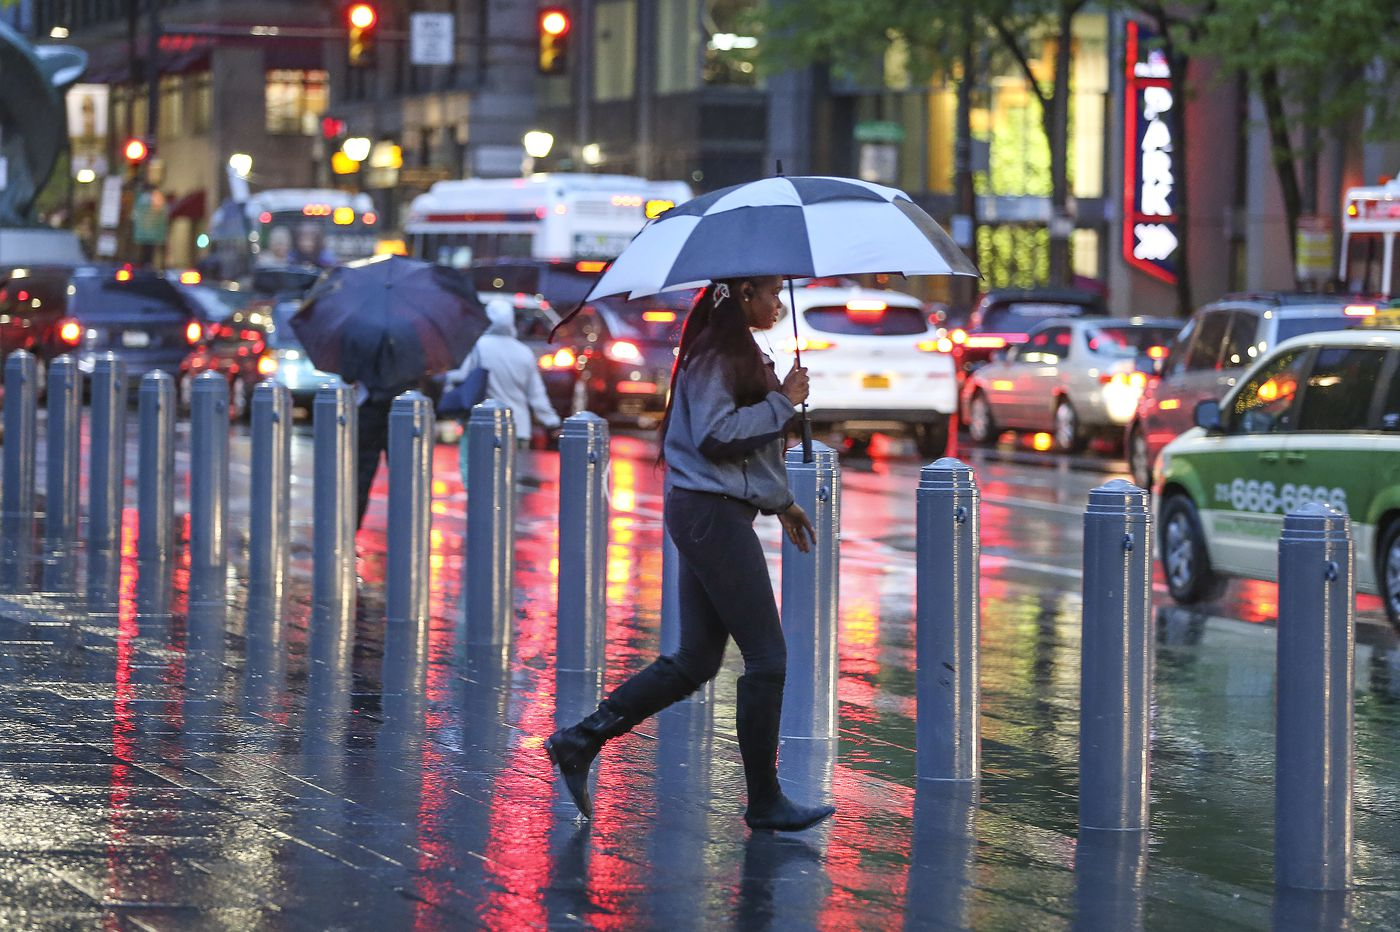 Severe storms sweep through Philly region